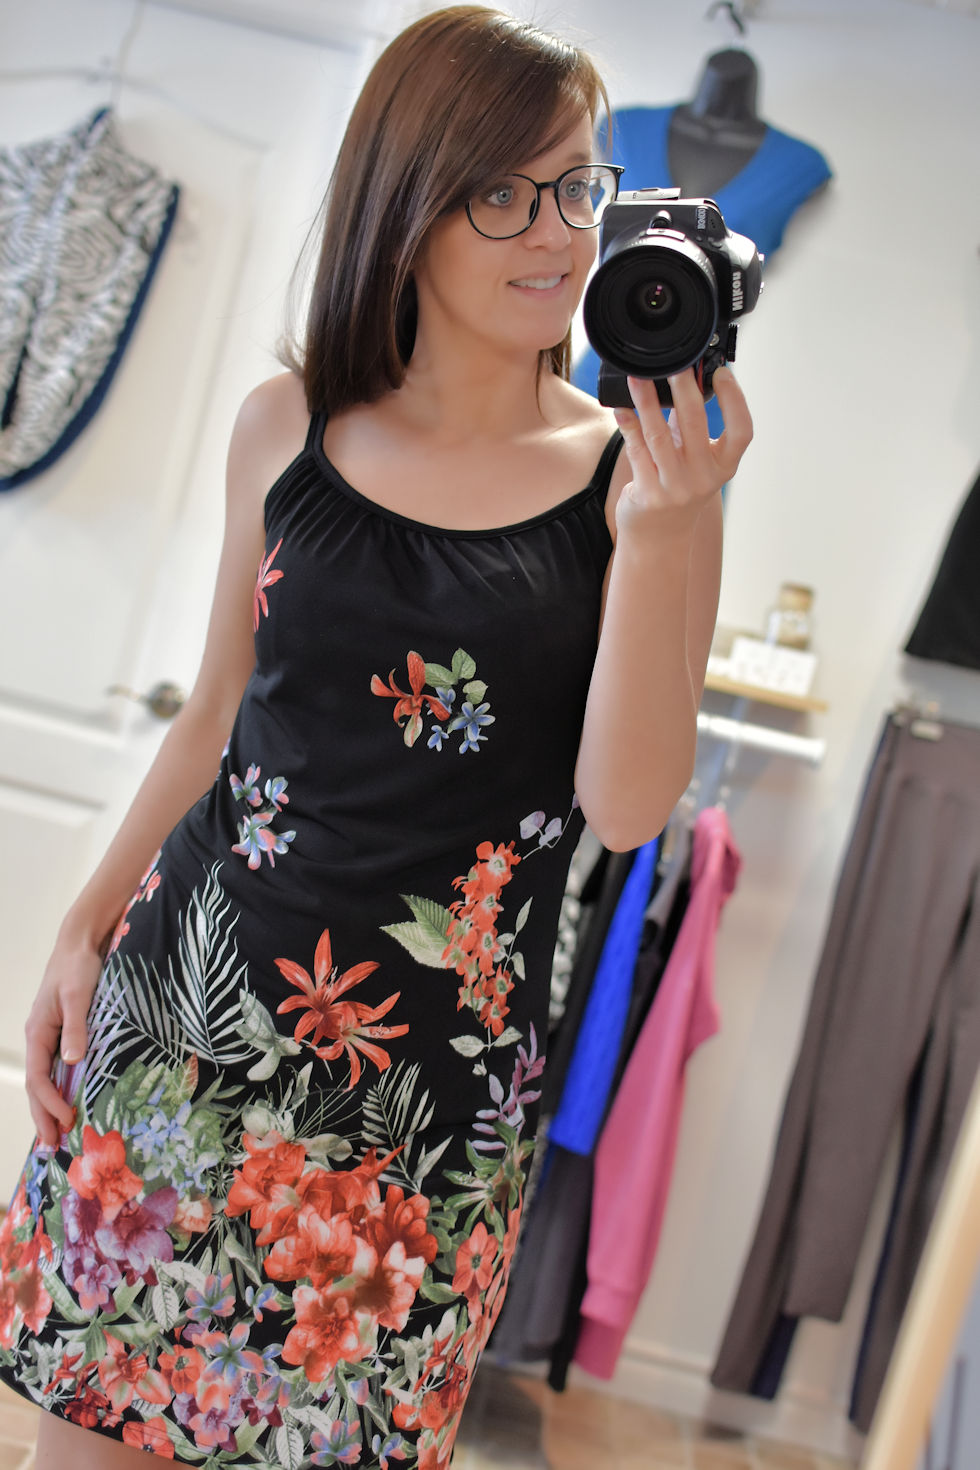 Black or navy floral dress with spaghetti straps made by Collection Space, a women's clothing brand